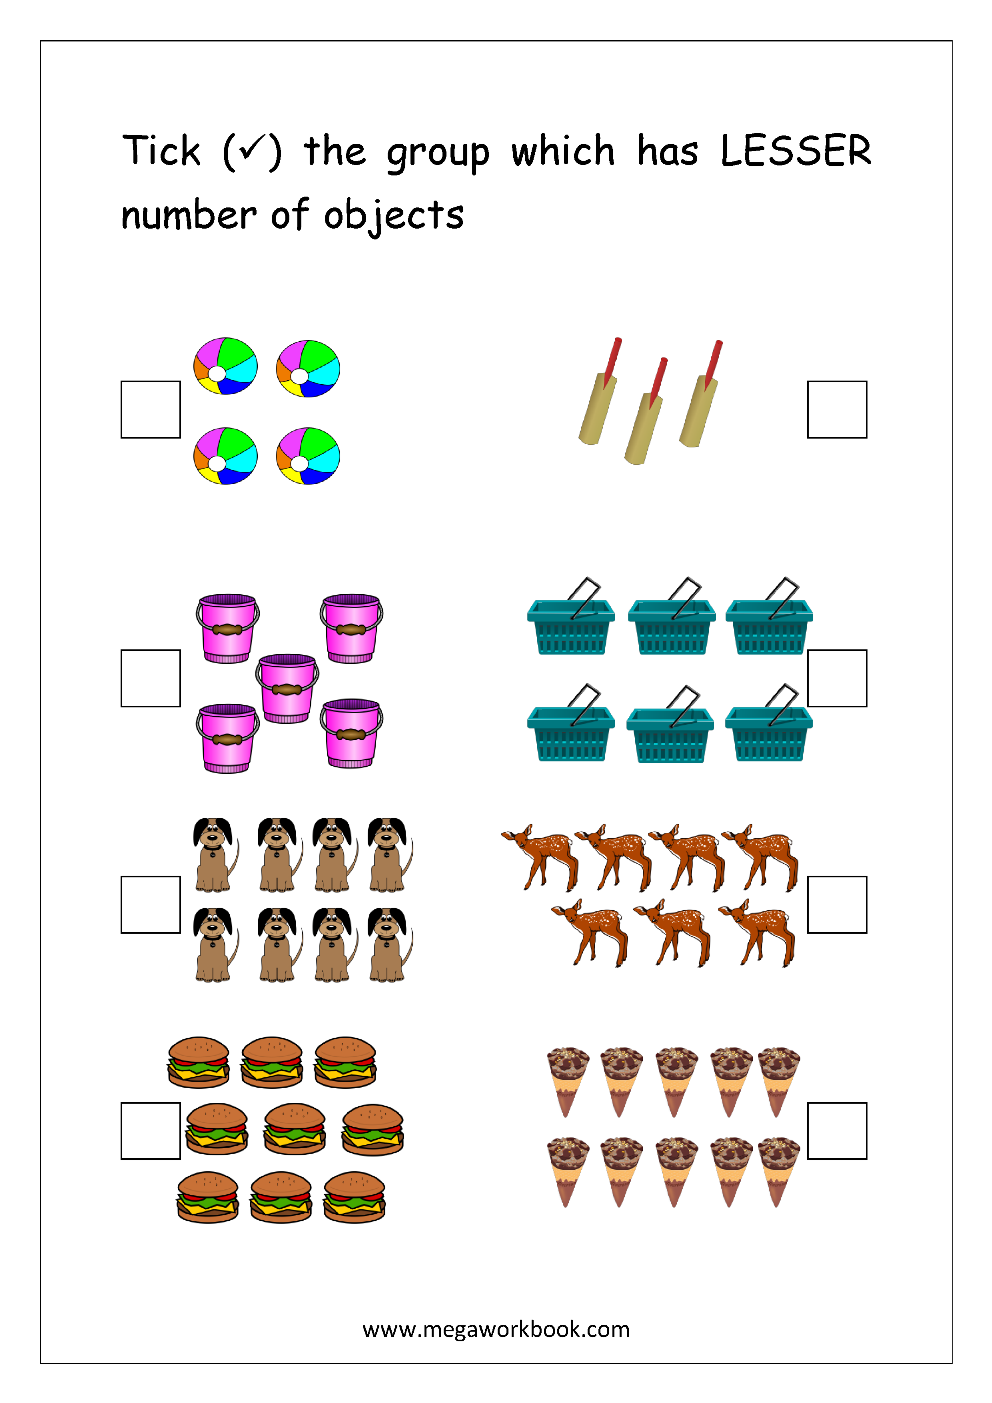 Free Printable More Or Less Worksheets Greater Than Less Than Worksheets Comparing Numbers 1 5 1 10 Megaworkbook - View Greater Than Less Than Worksheets For Kindergarten Pdf Pictures